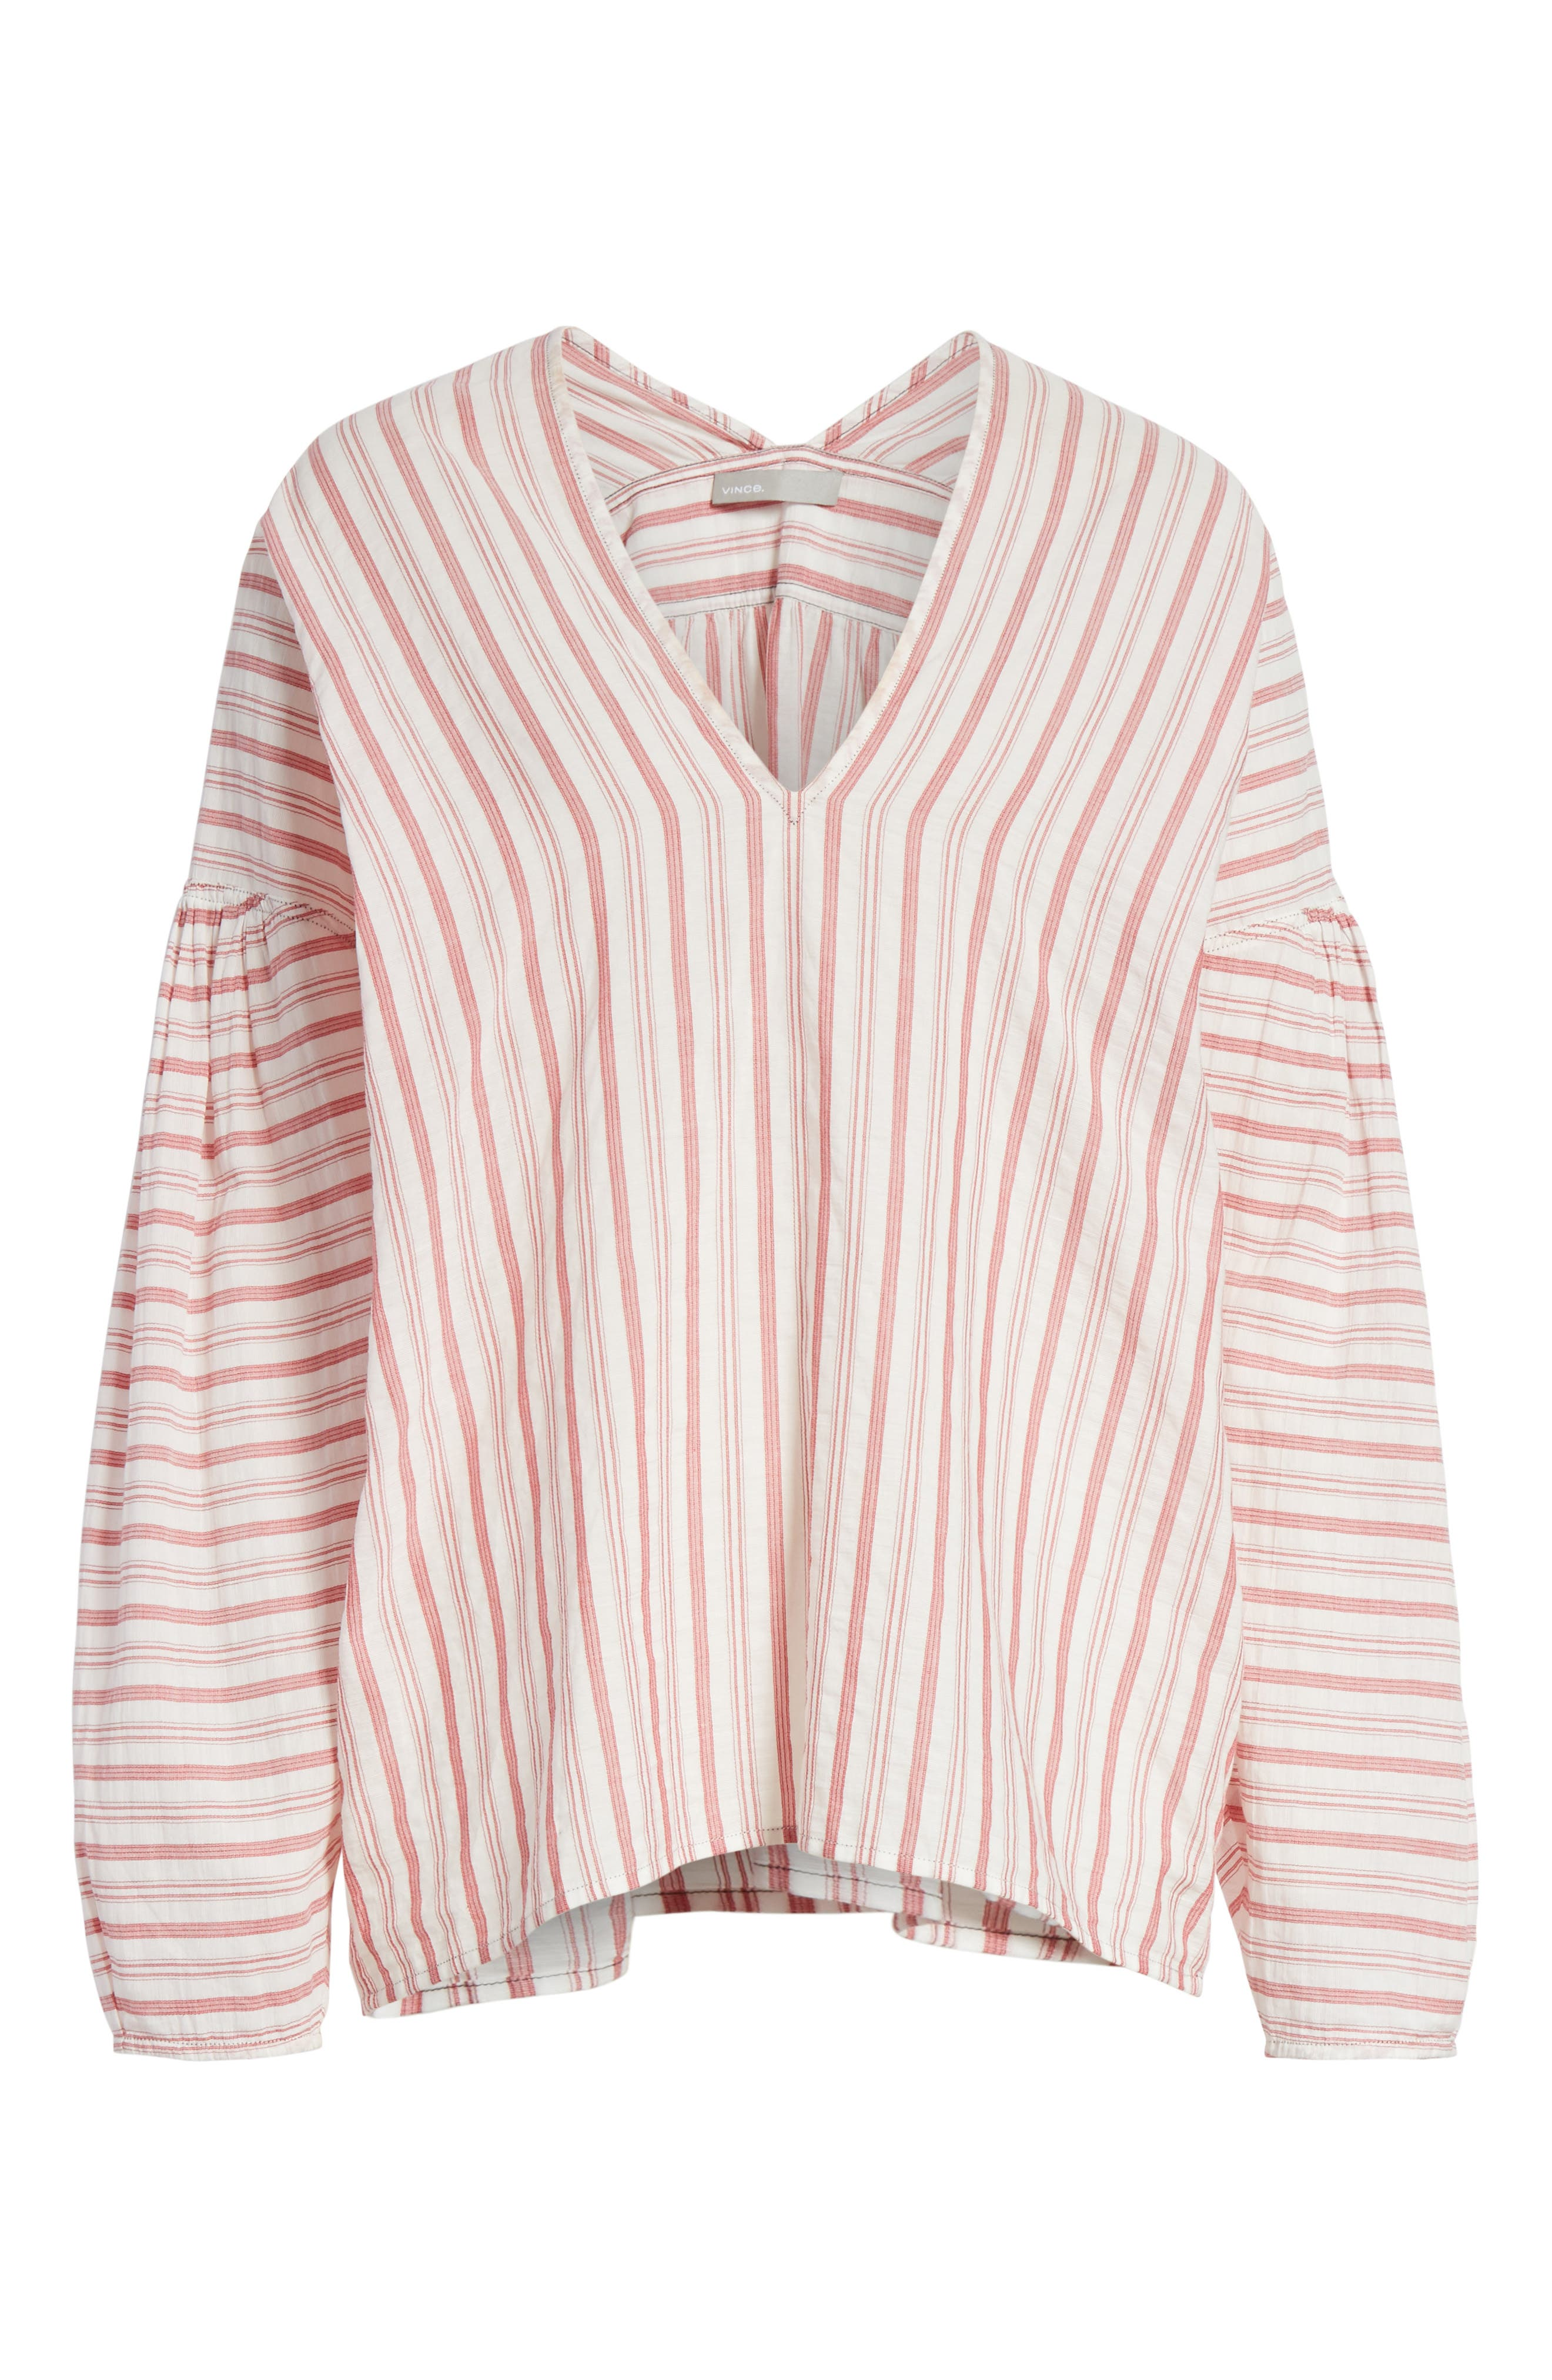 Stripe Cotton Top,                             Alternate thumbnail 6, color,                             Off White/ Poppy